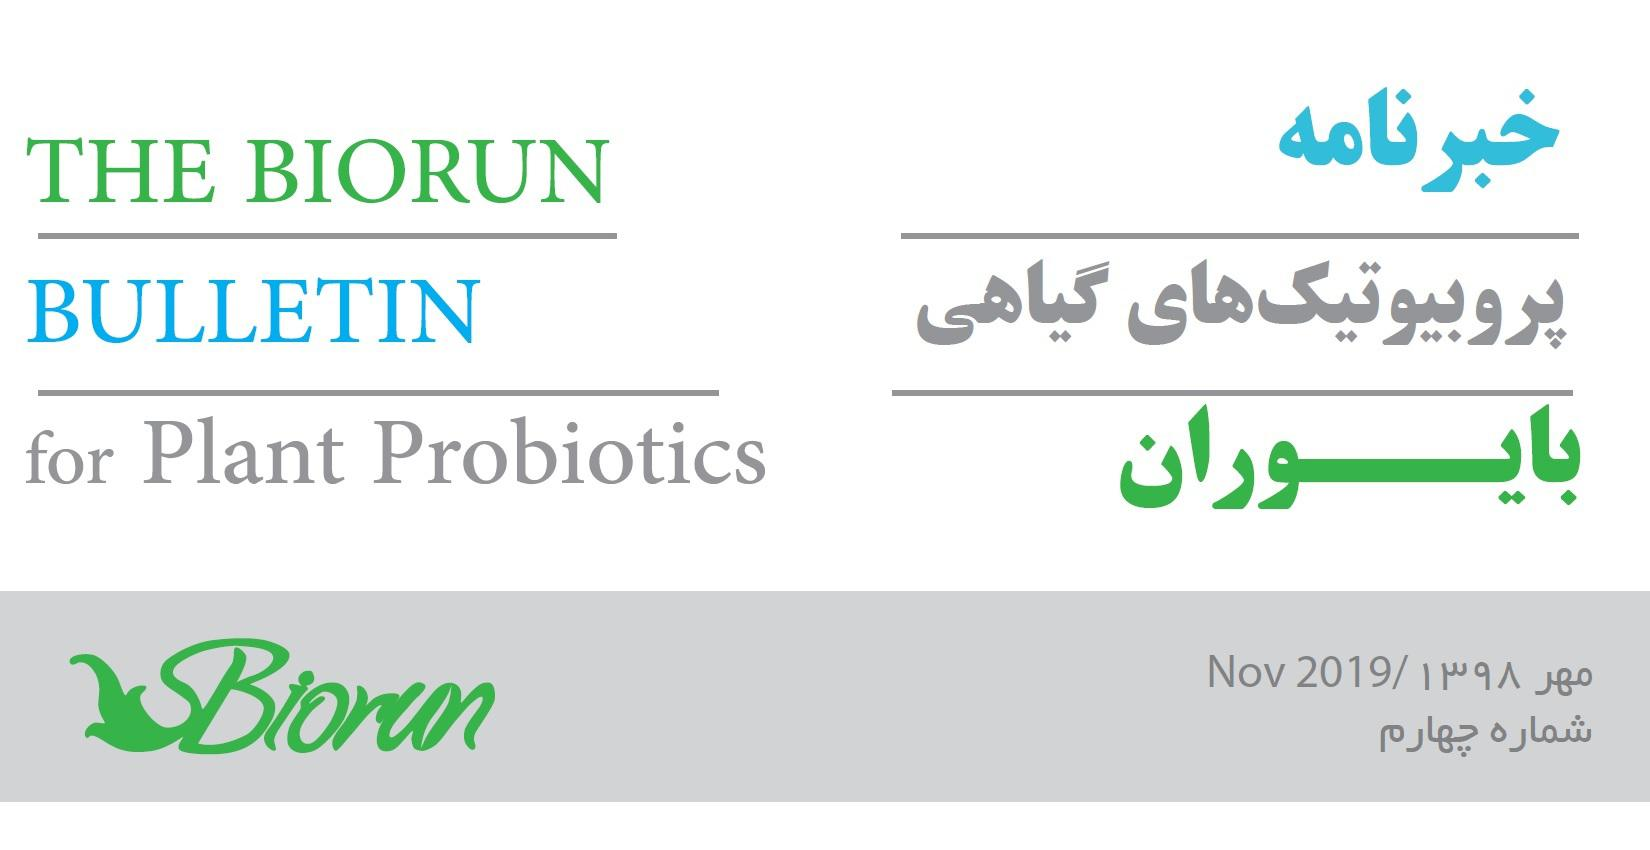 The Biorun Bulletin for Plant Probiotics, No. 4, October 2019